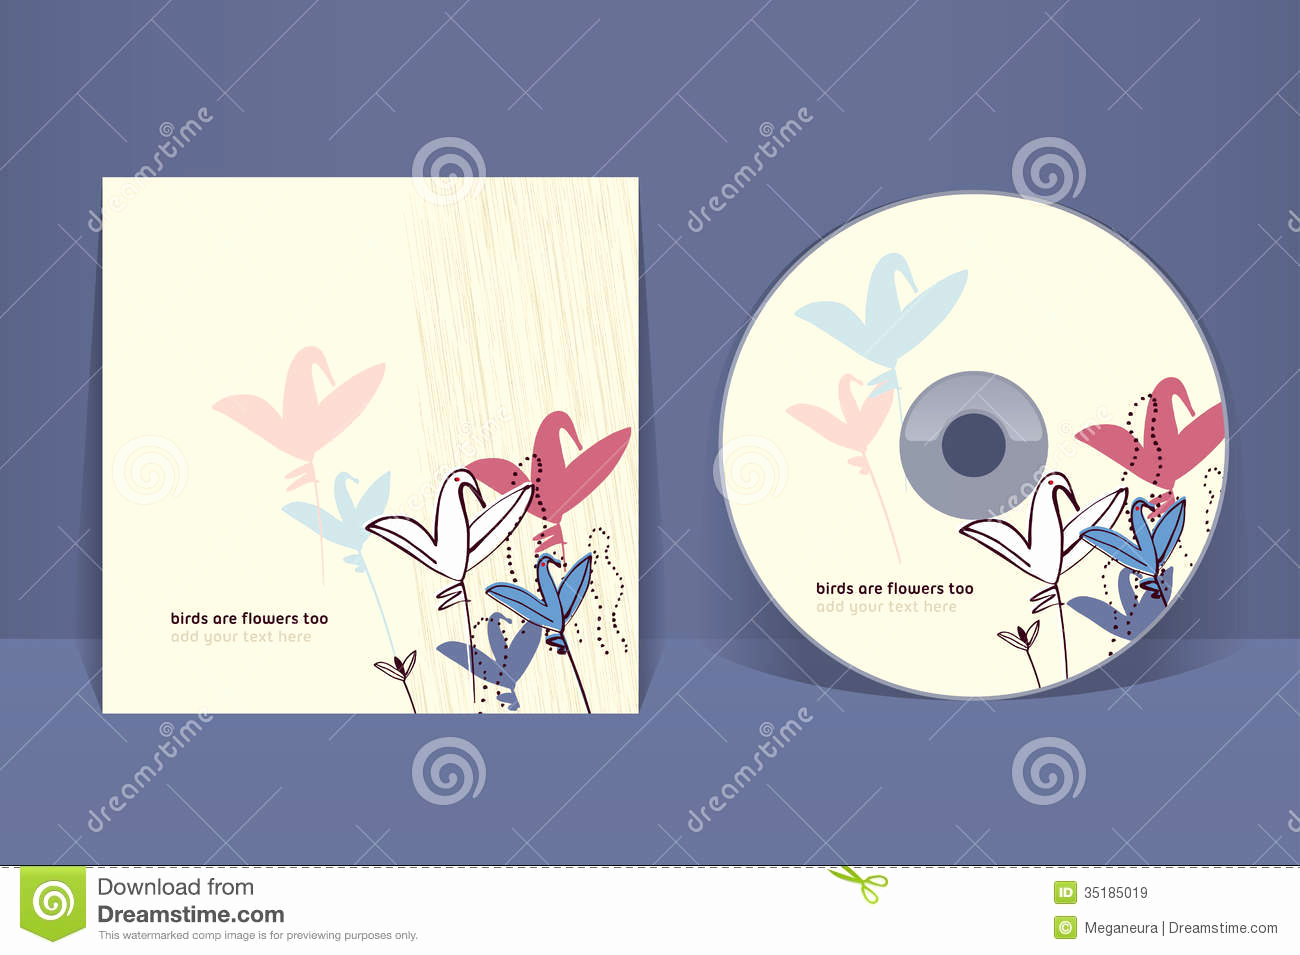 Cd Cover Design Template Fresh Cd Cover Design Template Royalty Free Stock Image